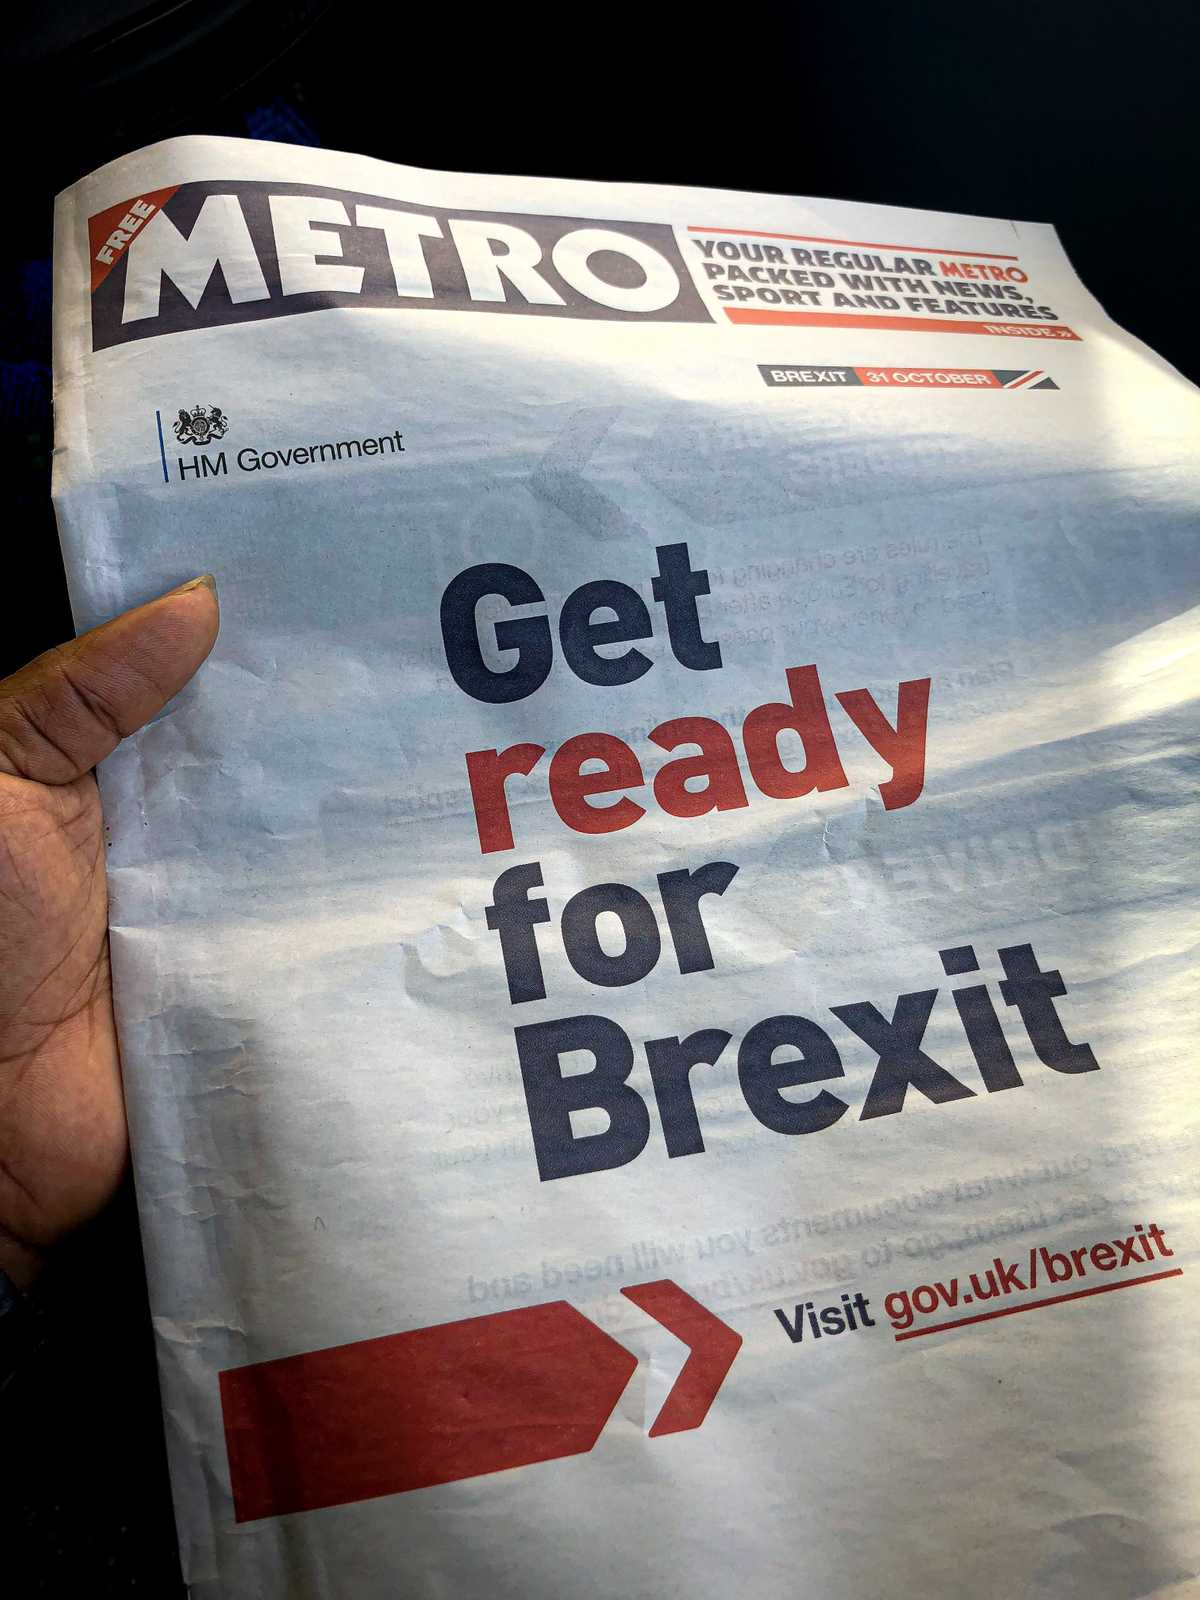 Brexit is finally coming true! Are you wondering what's going to change from now on? Read this article and find out whatever you are an expat, student or traveler.